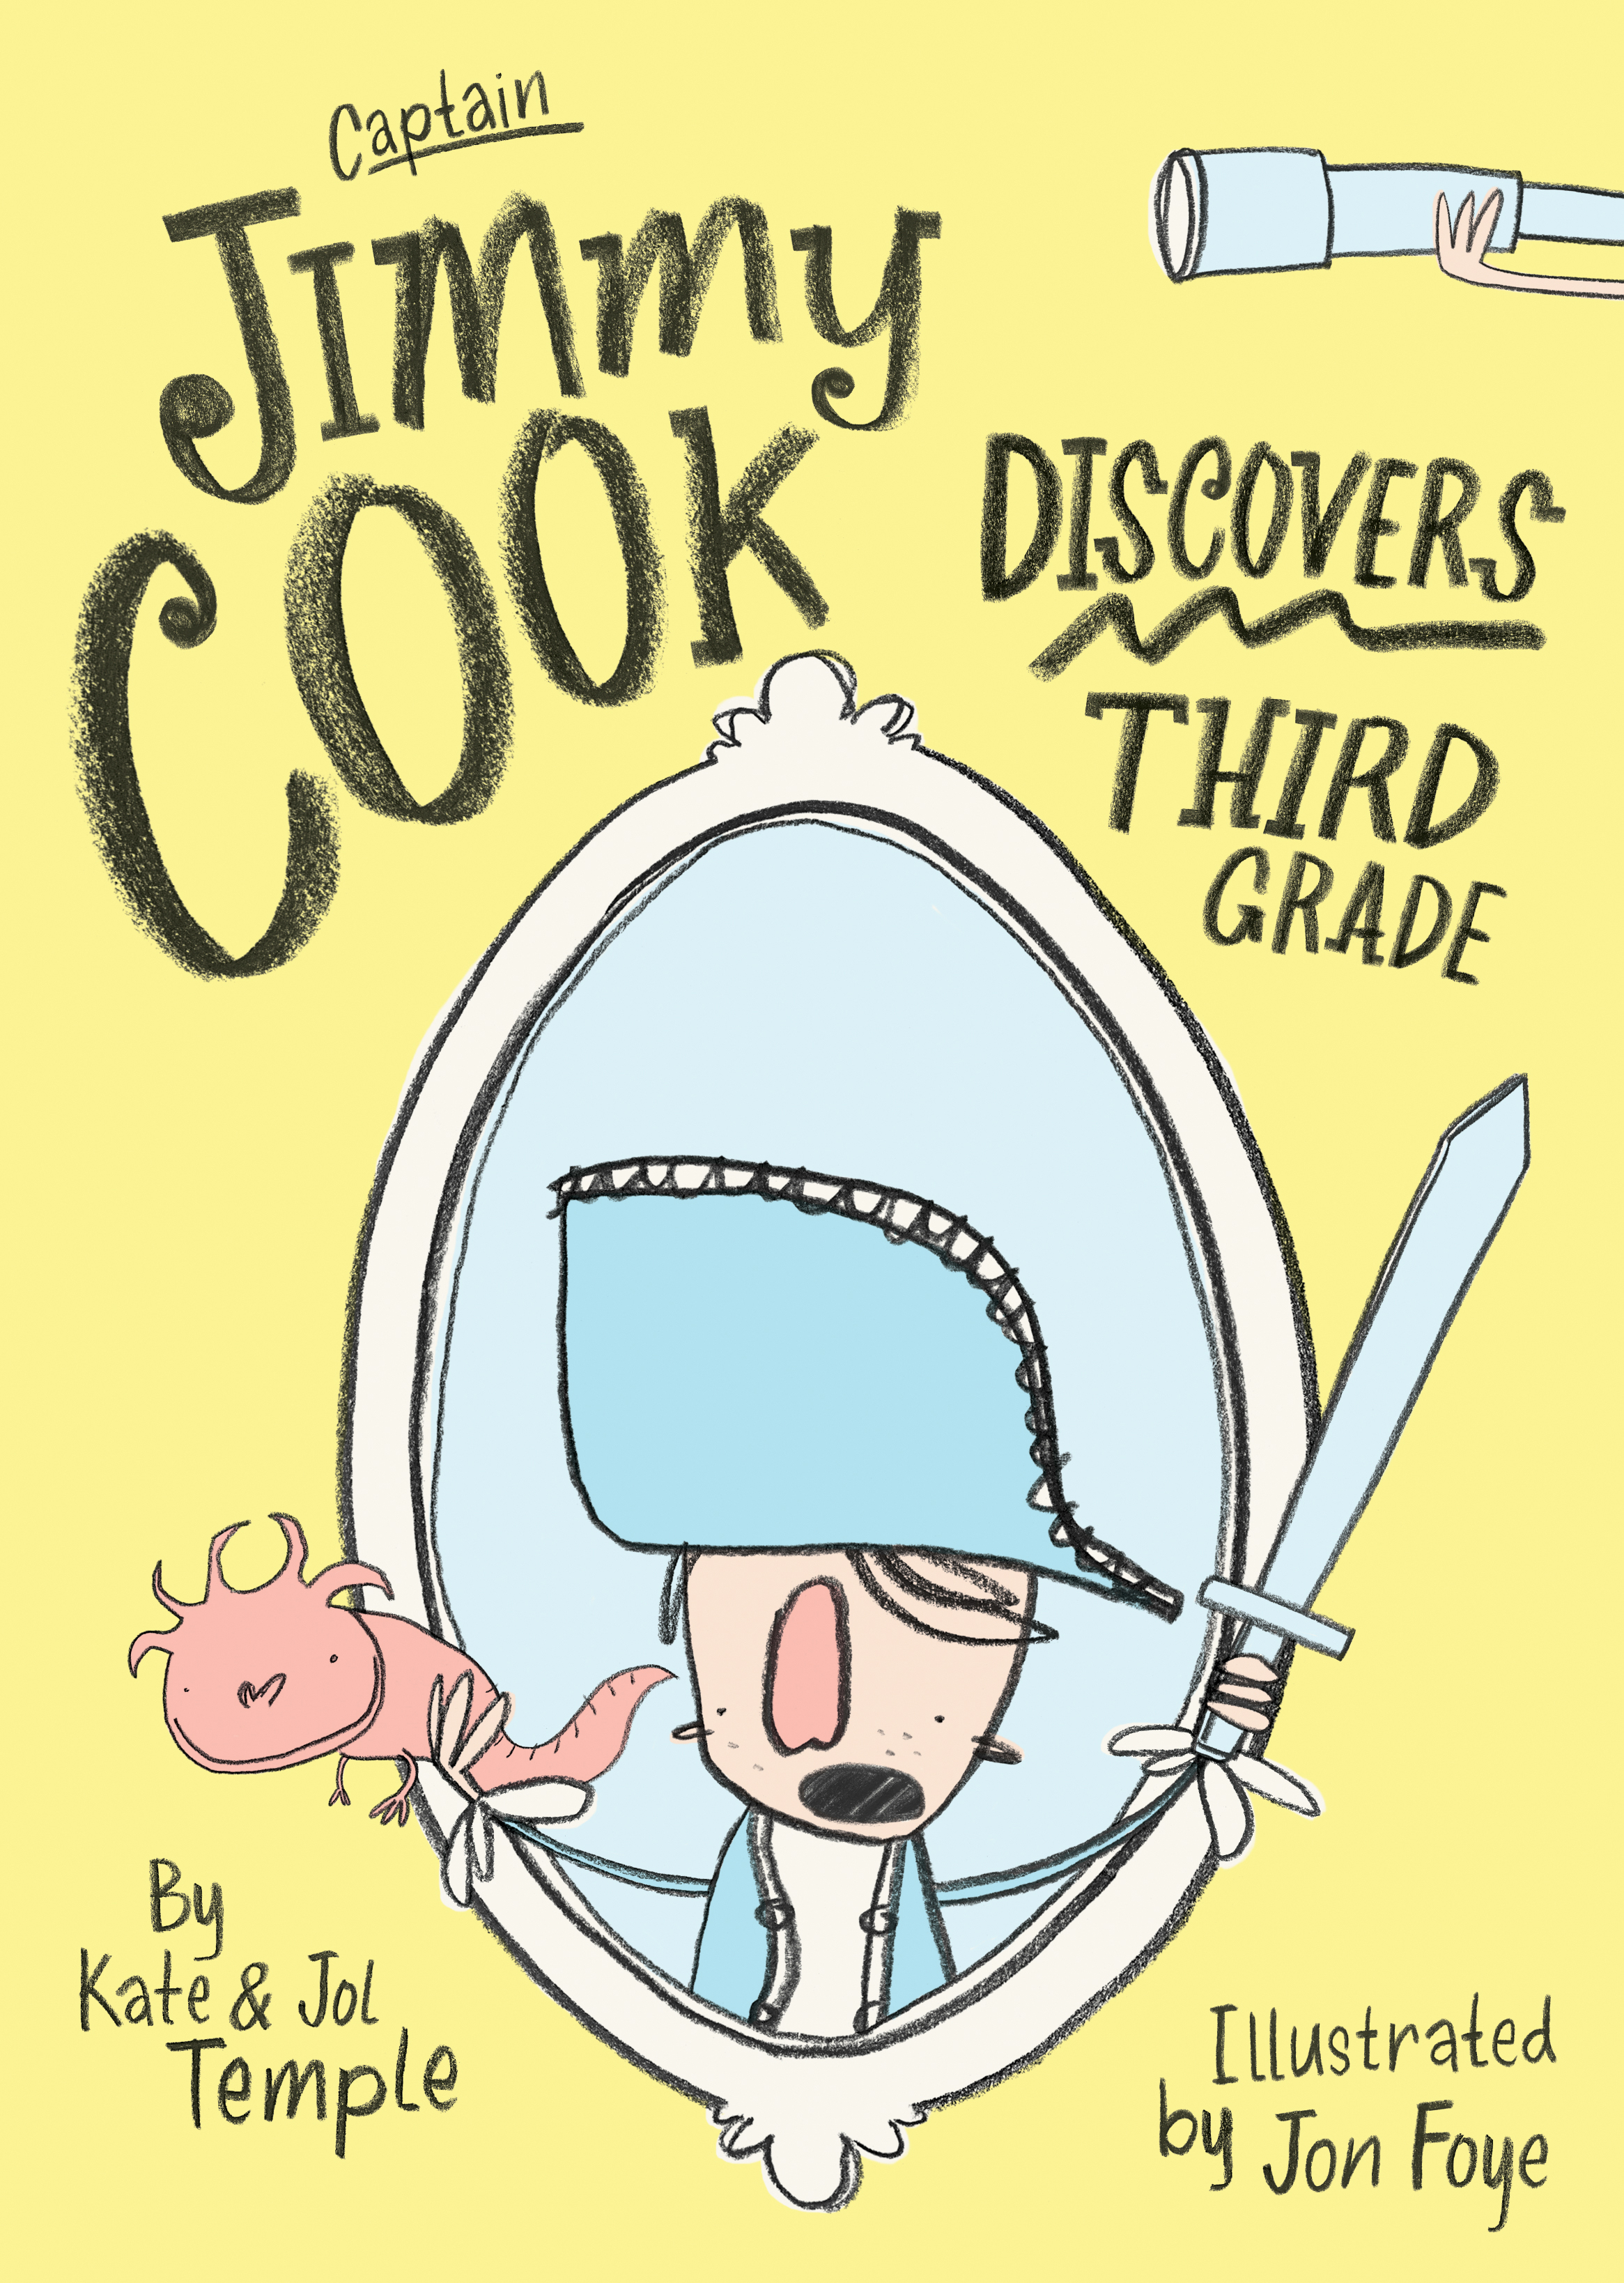 Captain Jimmy Cook Discovers Third Grade - Kate Temple and Jol Temple, illustrated by Jon Foye ...